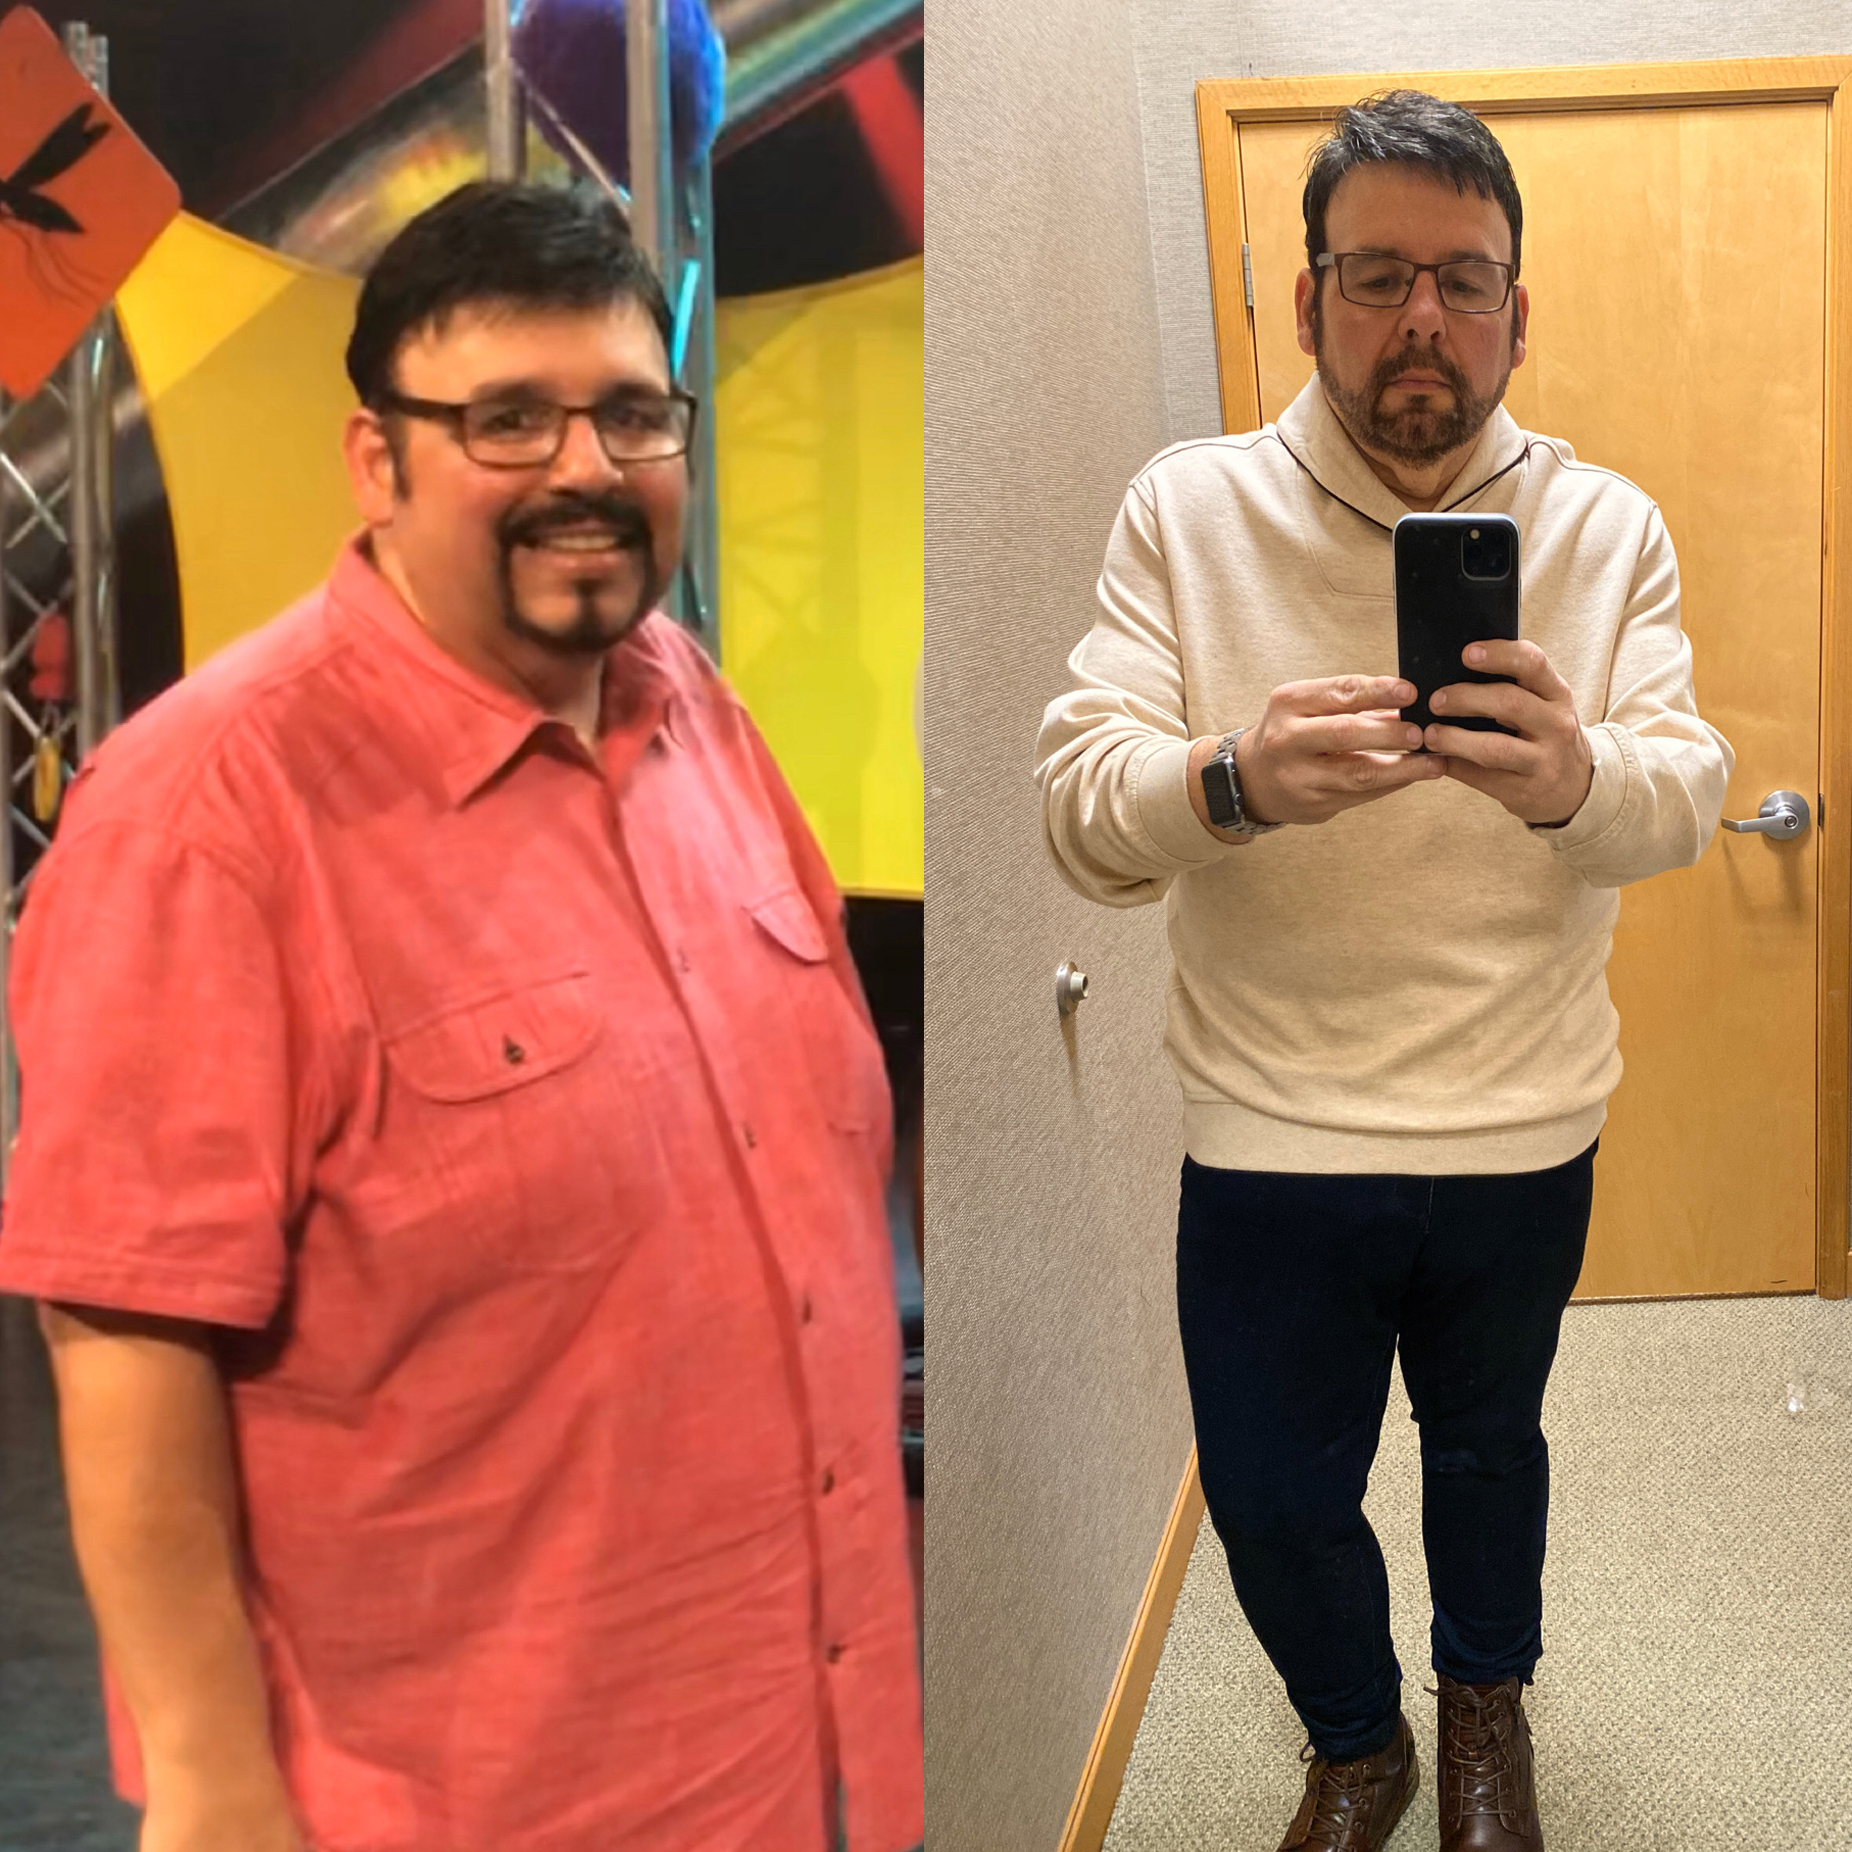 MikeBeforeAfter